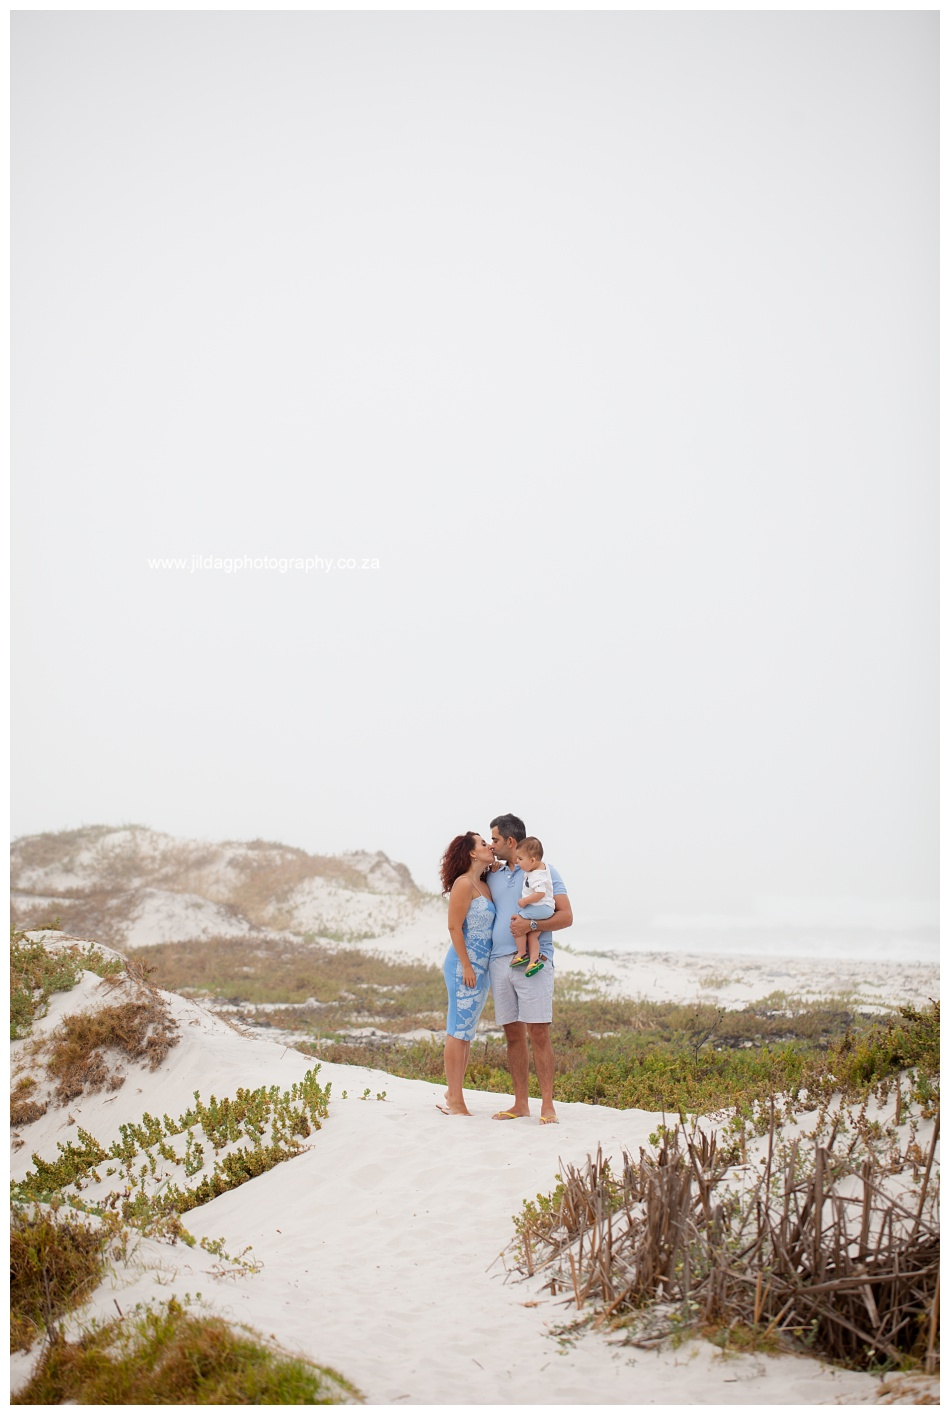 Jilda-G-Photography-family-photographer-beach_0672